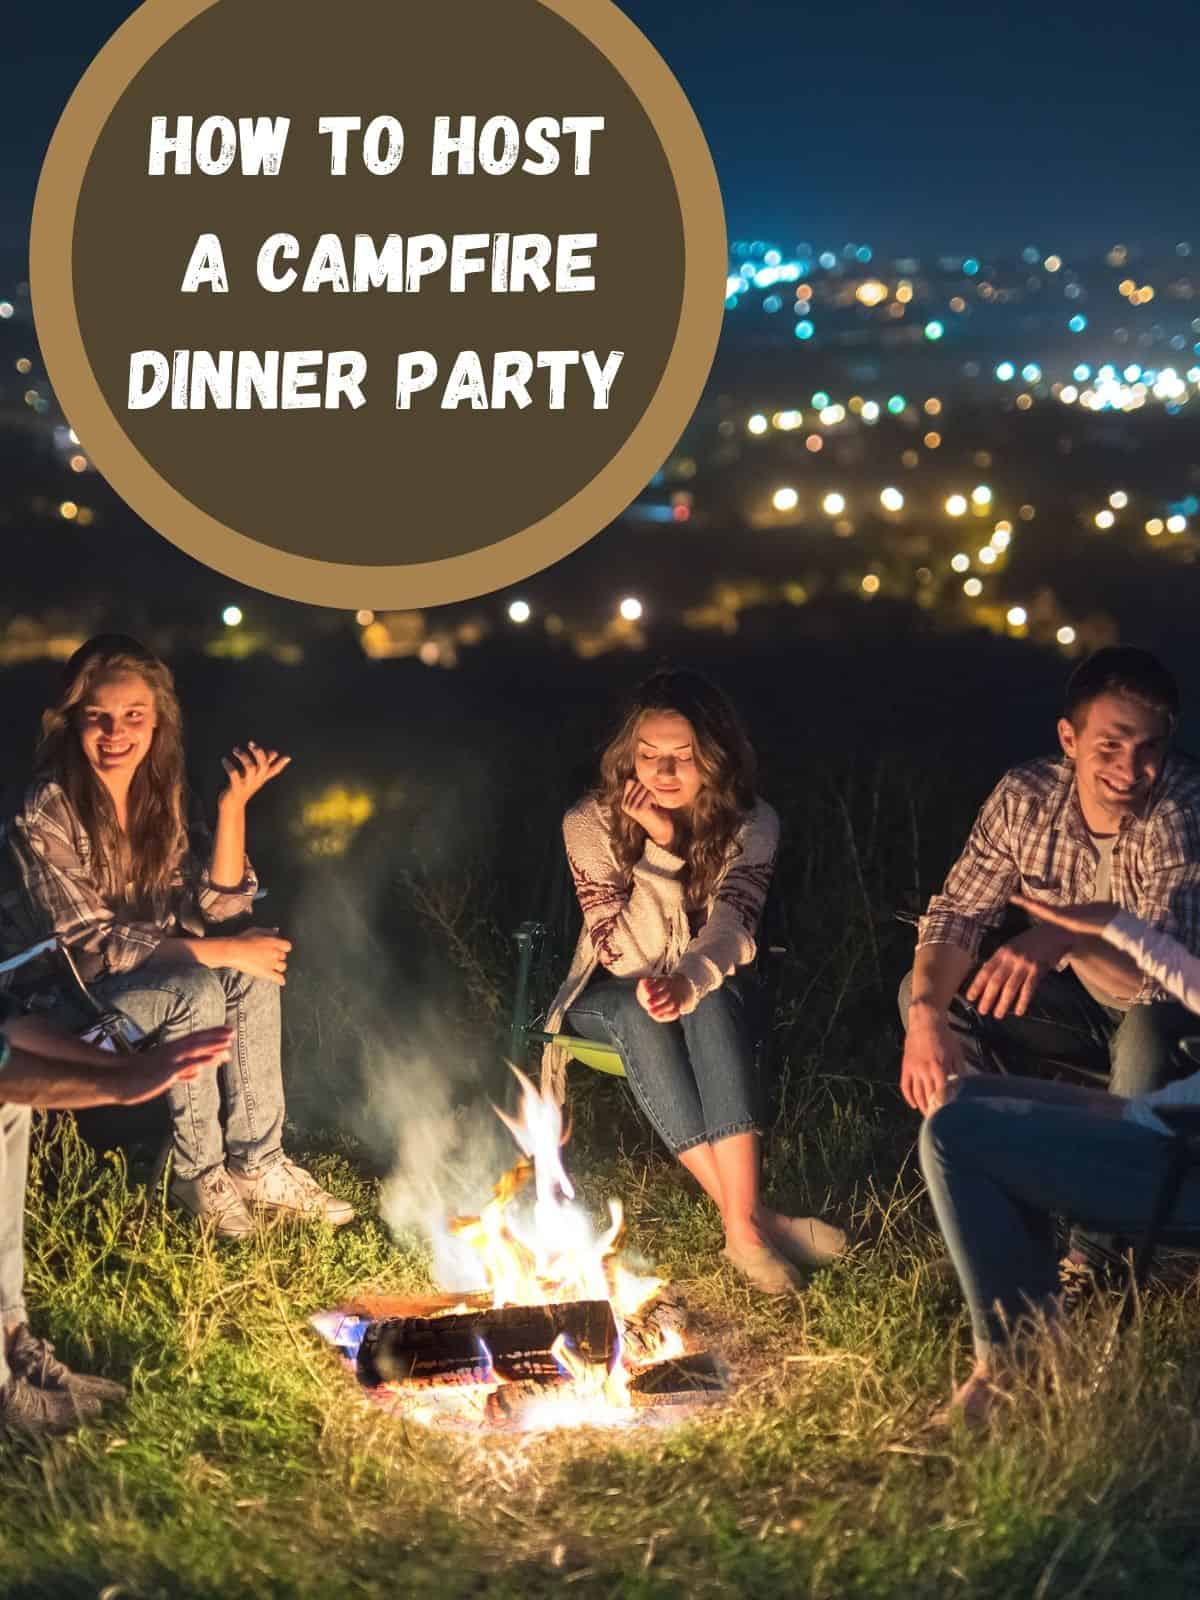 campfire dinner party with people around fire